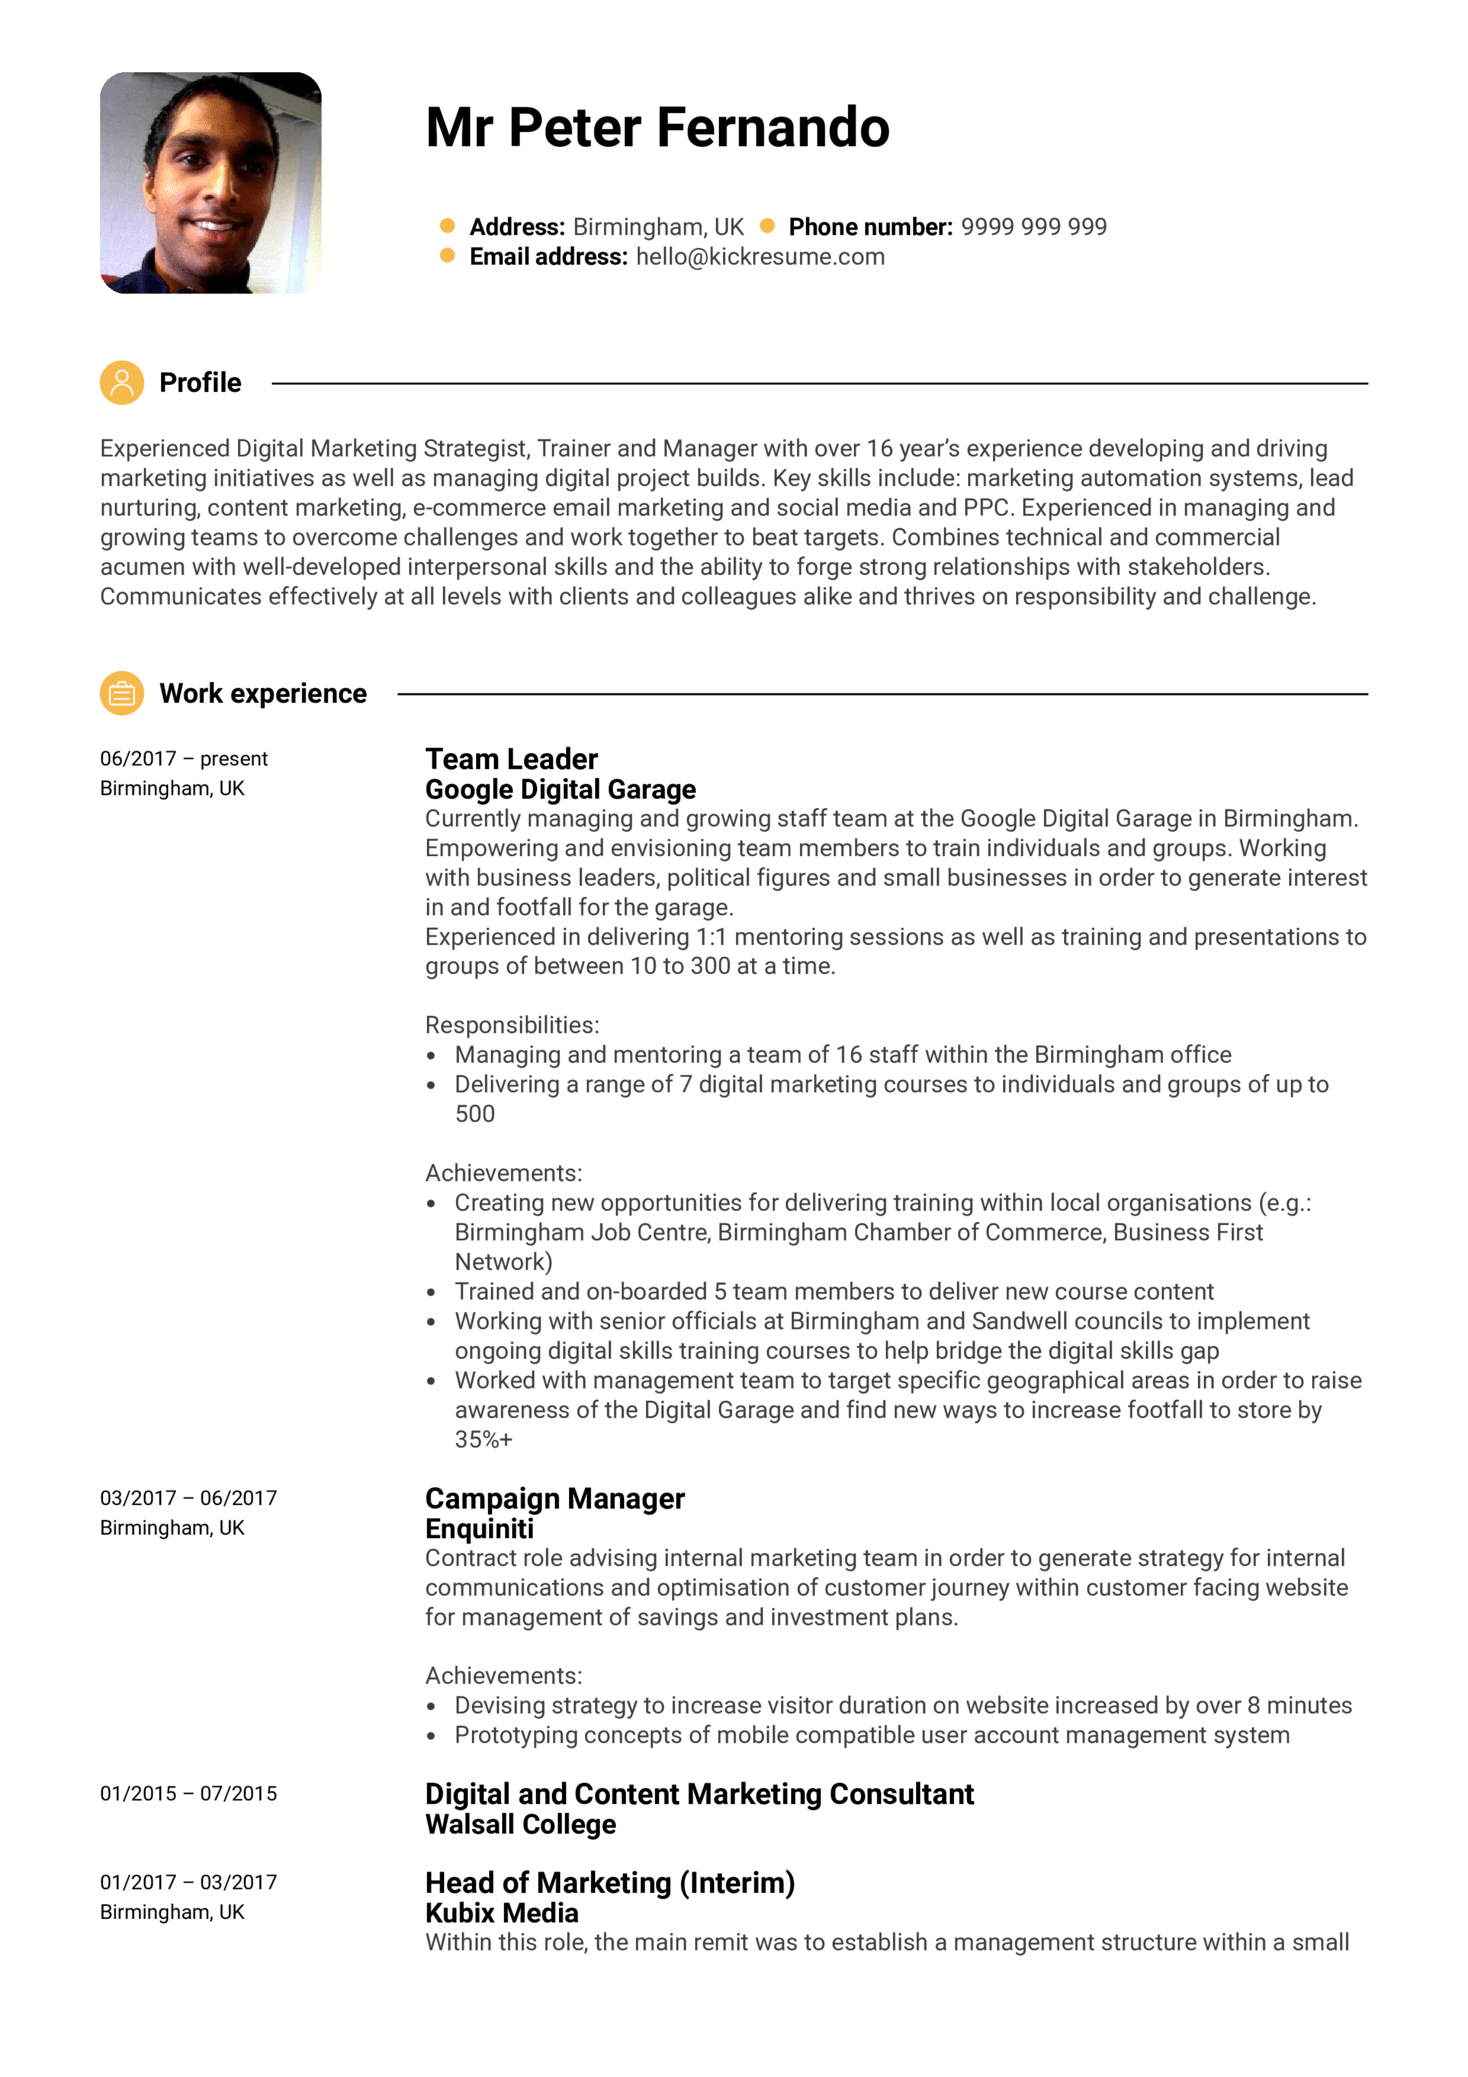 Resume Examples By Real People: Google Team Leader Resume